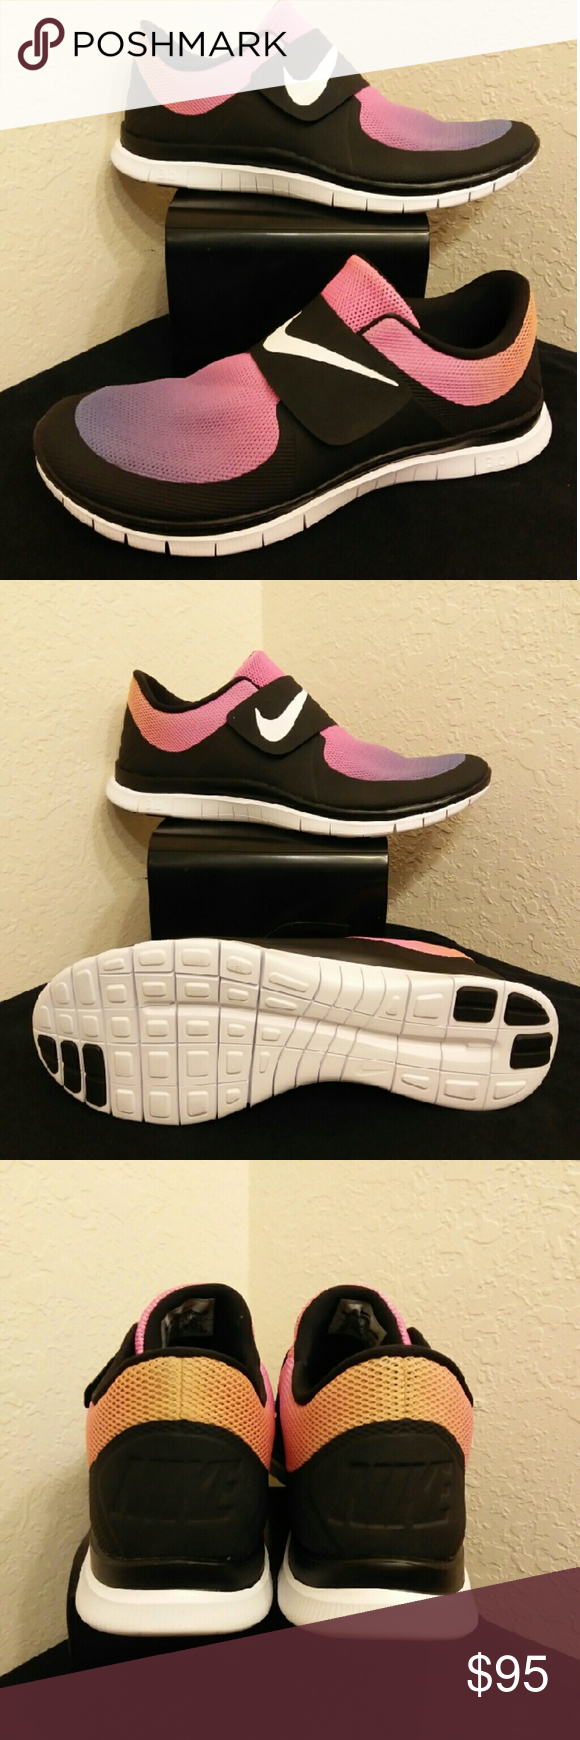 the best attitude 60288 2ee89 Nike Free Socfly SD Sunset Pack! Nike Free Socfly SD 3.0 Sunset Pack brand  new never worn without a box. Part of the Sunset Pack.The Nike Free SOCFLY  Mens ...